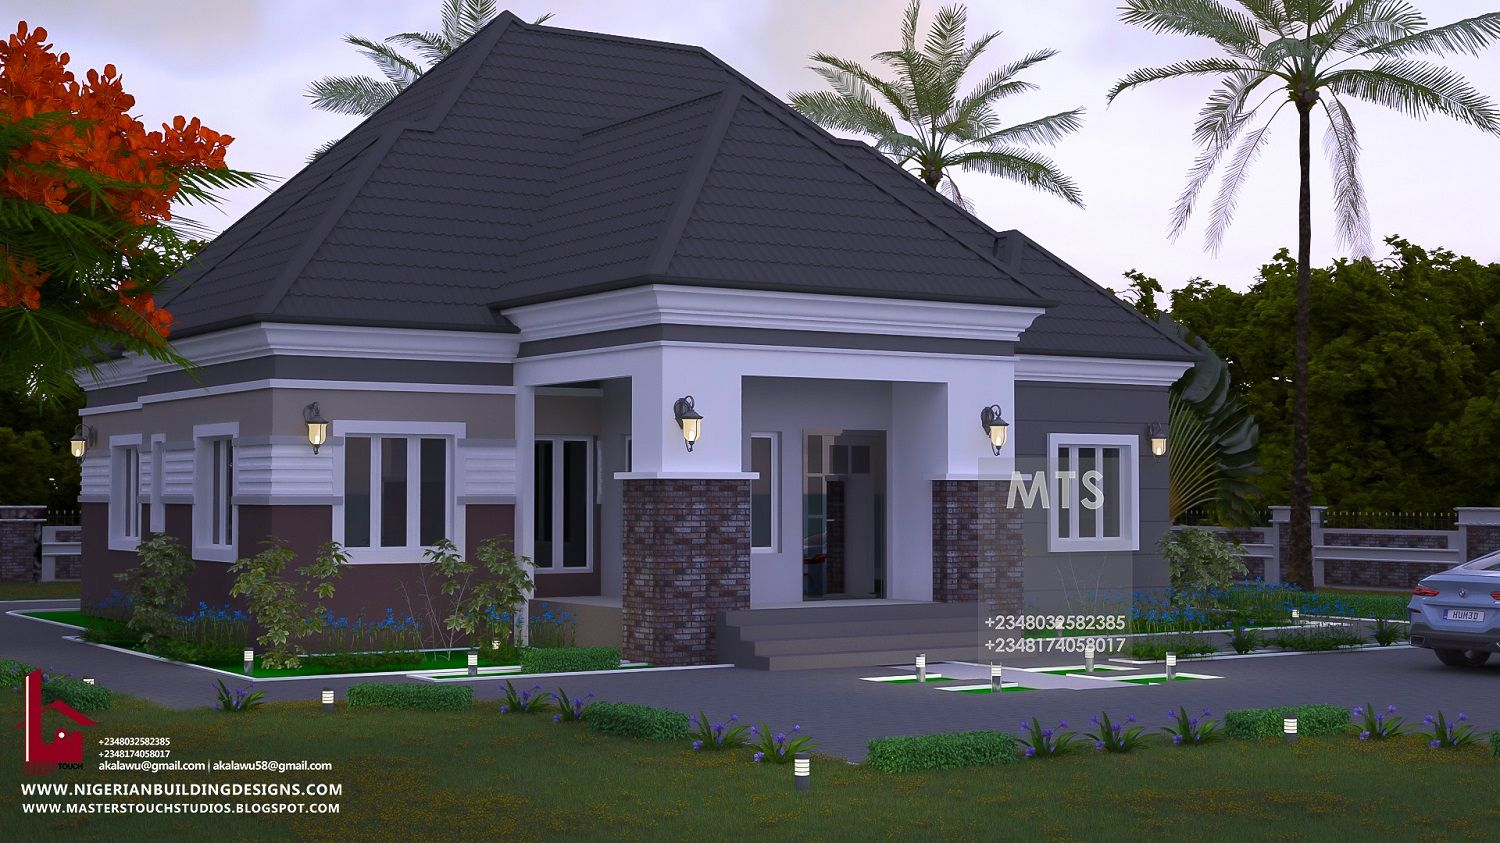 4 Bedroom Bungalow Rf 4022 Modern Bungalow House Plans Beautiful House Plans Modern Bungalow House Design